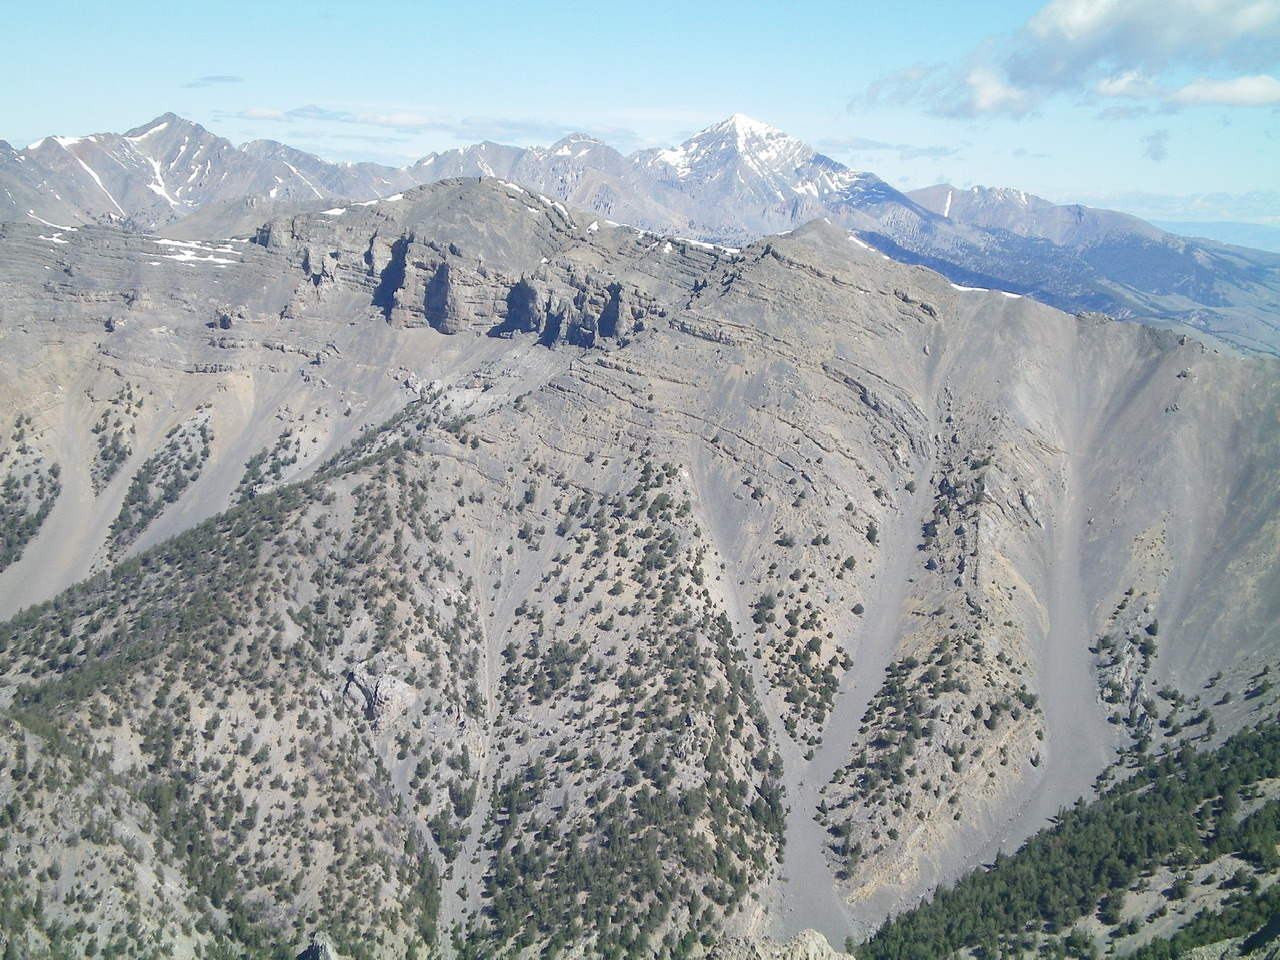 Shril Benchmark (left of center) and Point 10601 (right of center) and the magnificent South Ridge (descending diagonally leftward) with snow-capped Diamond Peak in the distance. Livingston Douglas Photo